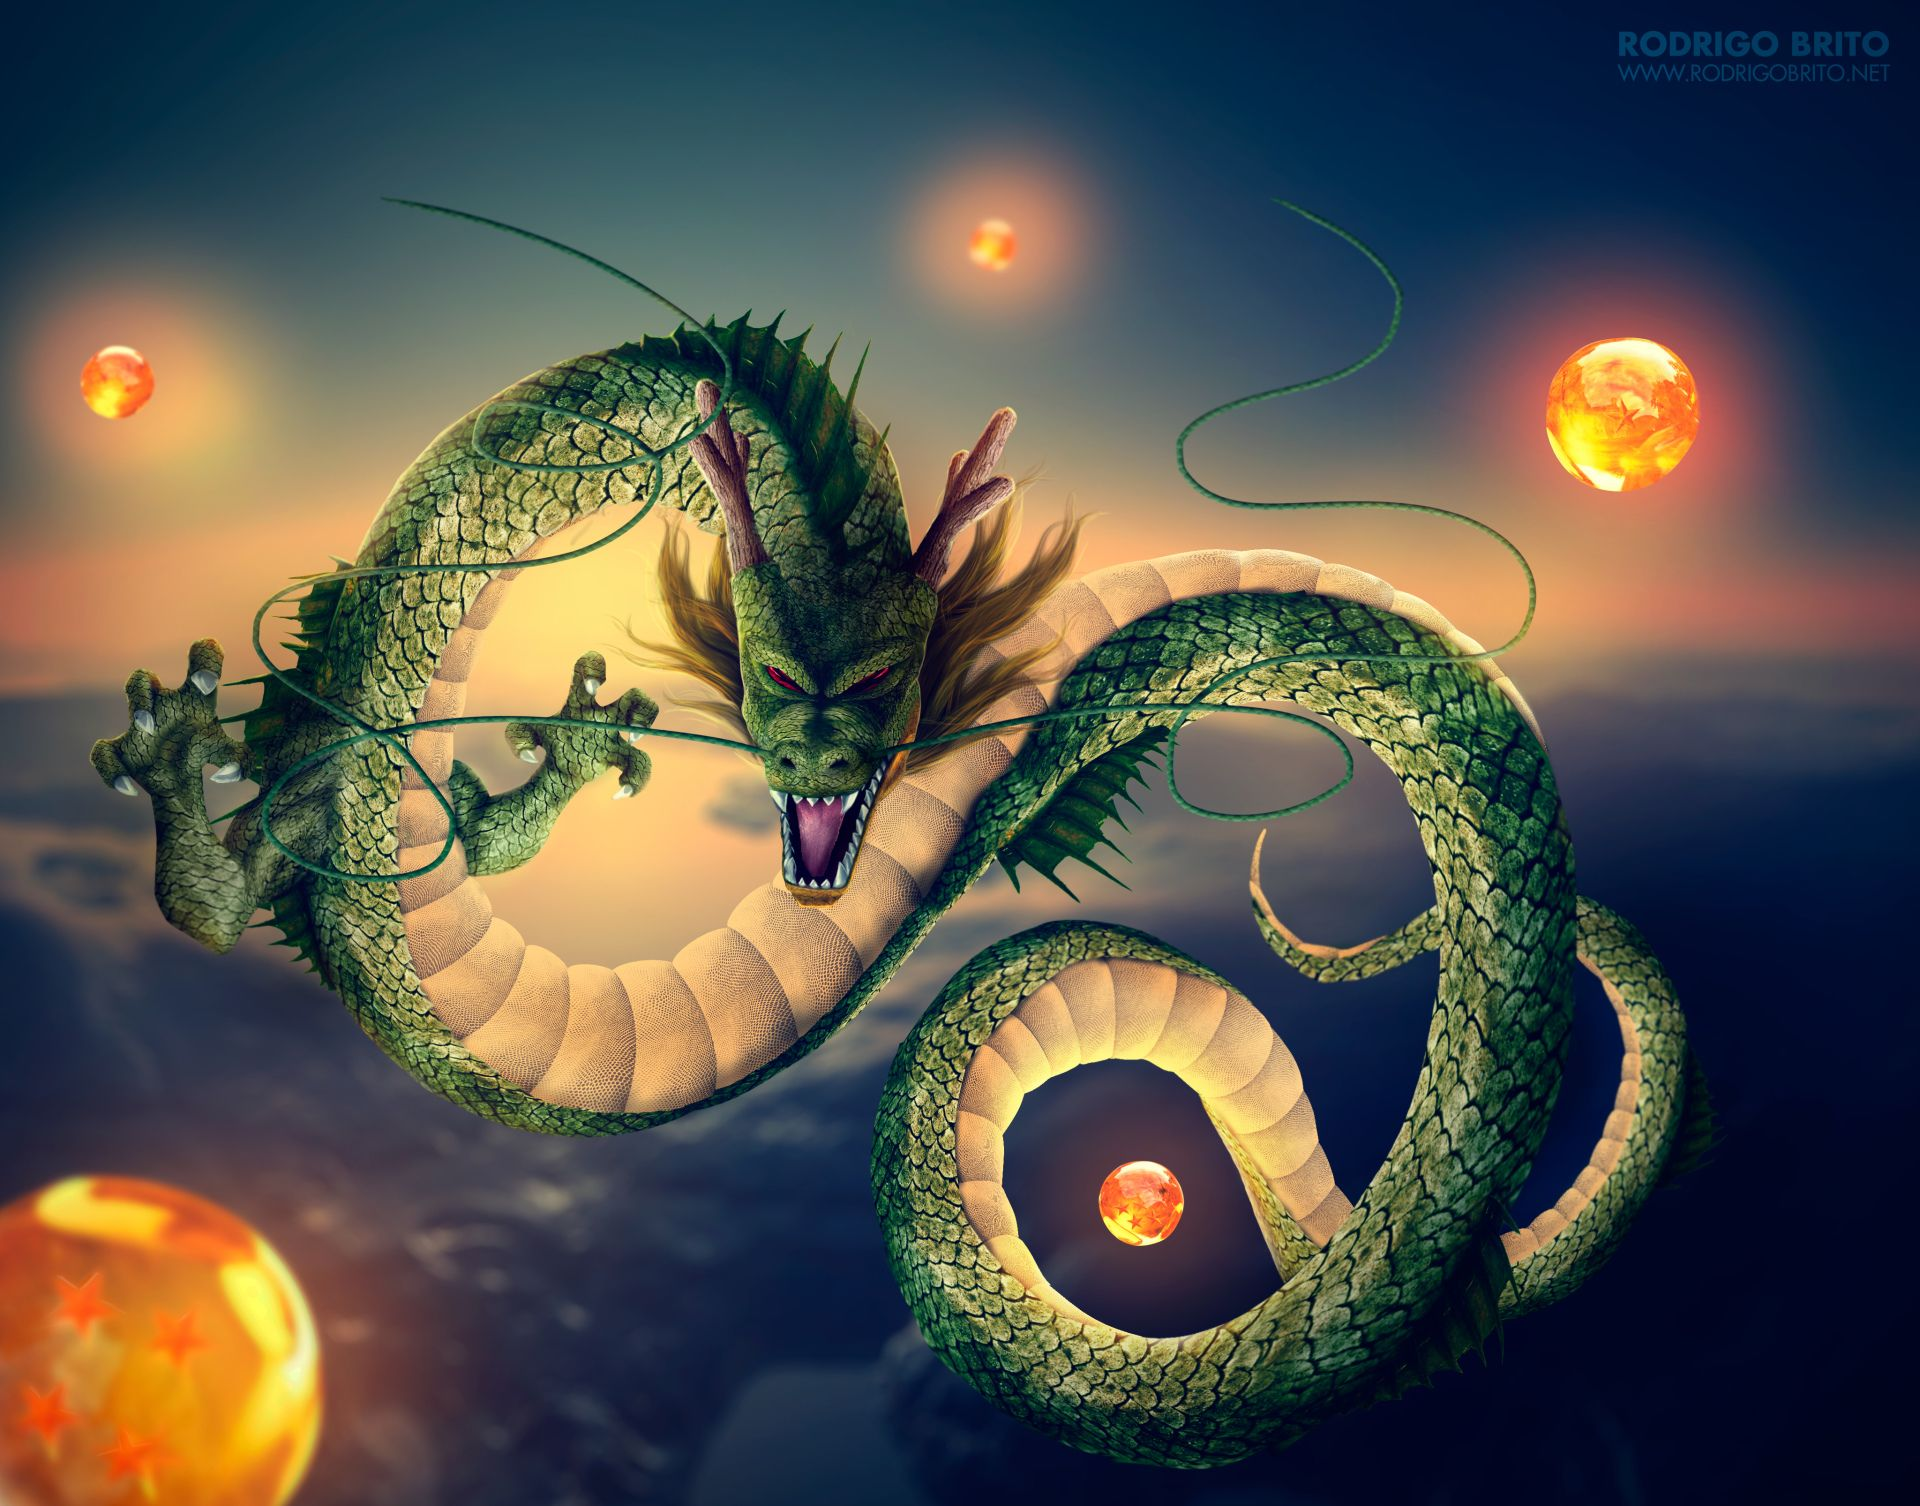 Anime dragon ball z shenron dragon ball wallpaper - 3d wallpaper of dragon ball z ...